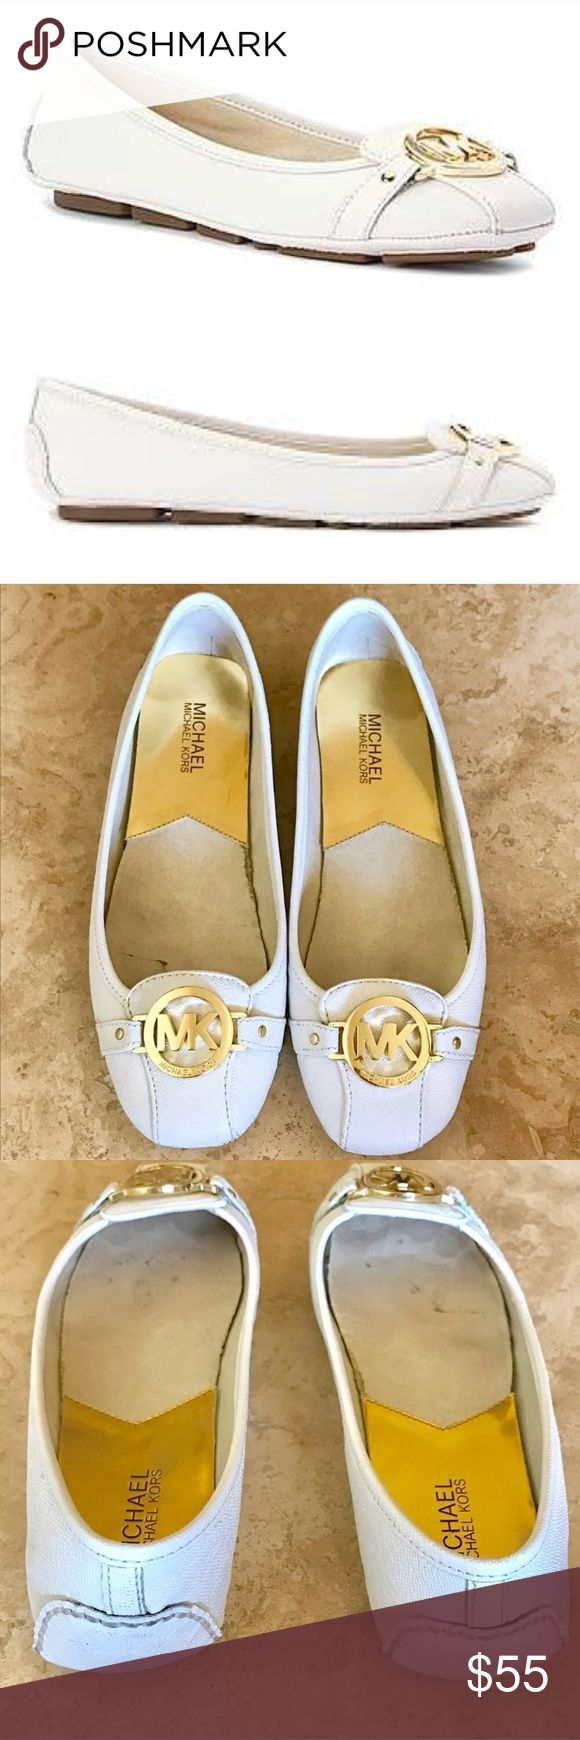 Michael Kors Fulton Flats Gold White Michael Kors Fulton Moc. Flat genuine Saffiano leather shoe. Color: Optic White (bright white) with gold metal front buckle. Size: 9. Comes with box. Worn. Defect: back of heels have dark stains from handling/wear. Insides show spots/stains from wear. Michael Kors Shoes Flats & Loafers